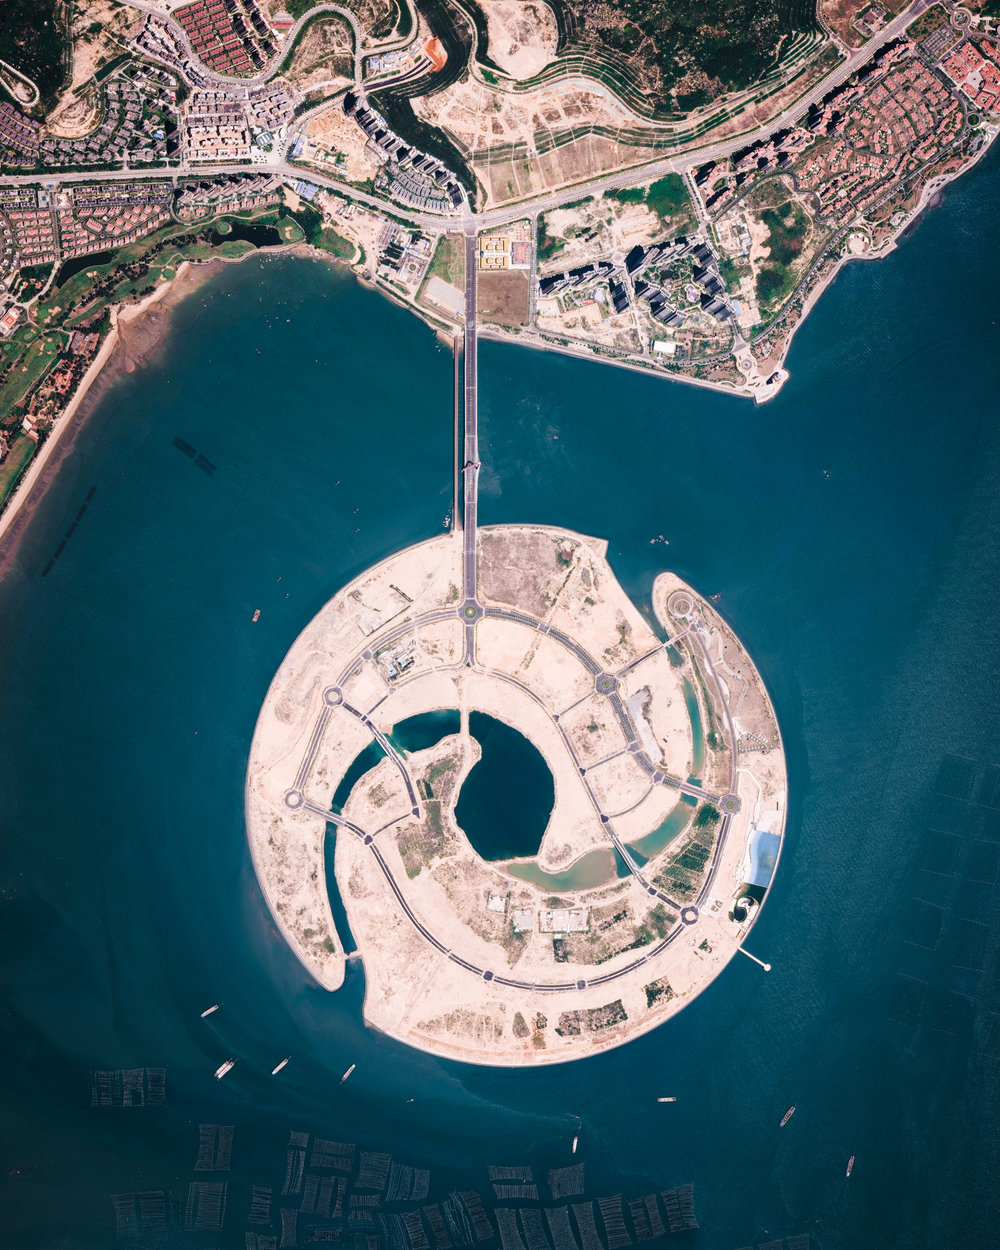 "Shuangyu Island, also known as Double Fish Island, is a man-made island under construction in Xiamen Bay, Southeast China. Its design, which depicts a pair of dolphins circling each other, calls for roughly 8.8 billion gallons (33.3 billion liters) of reclaimed land to create. The island is slightly more than one mile (1.68 km) in diameter with about 7 miles (11.4 km) of coastline. When finished, it will house a high-end ecological resort.  24°22'28.7""N, 118°03'47.3""E  Source imagery: DigitalGlobe"